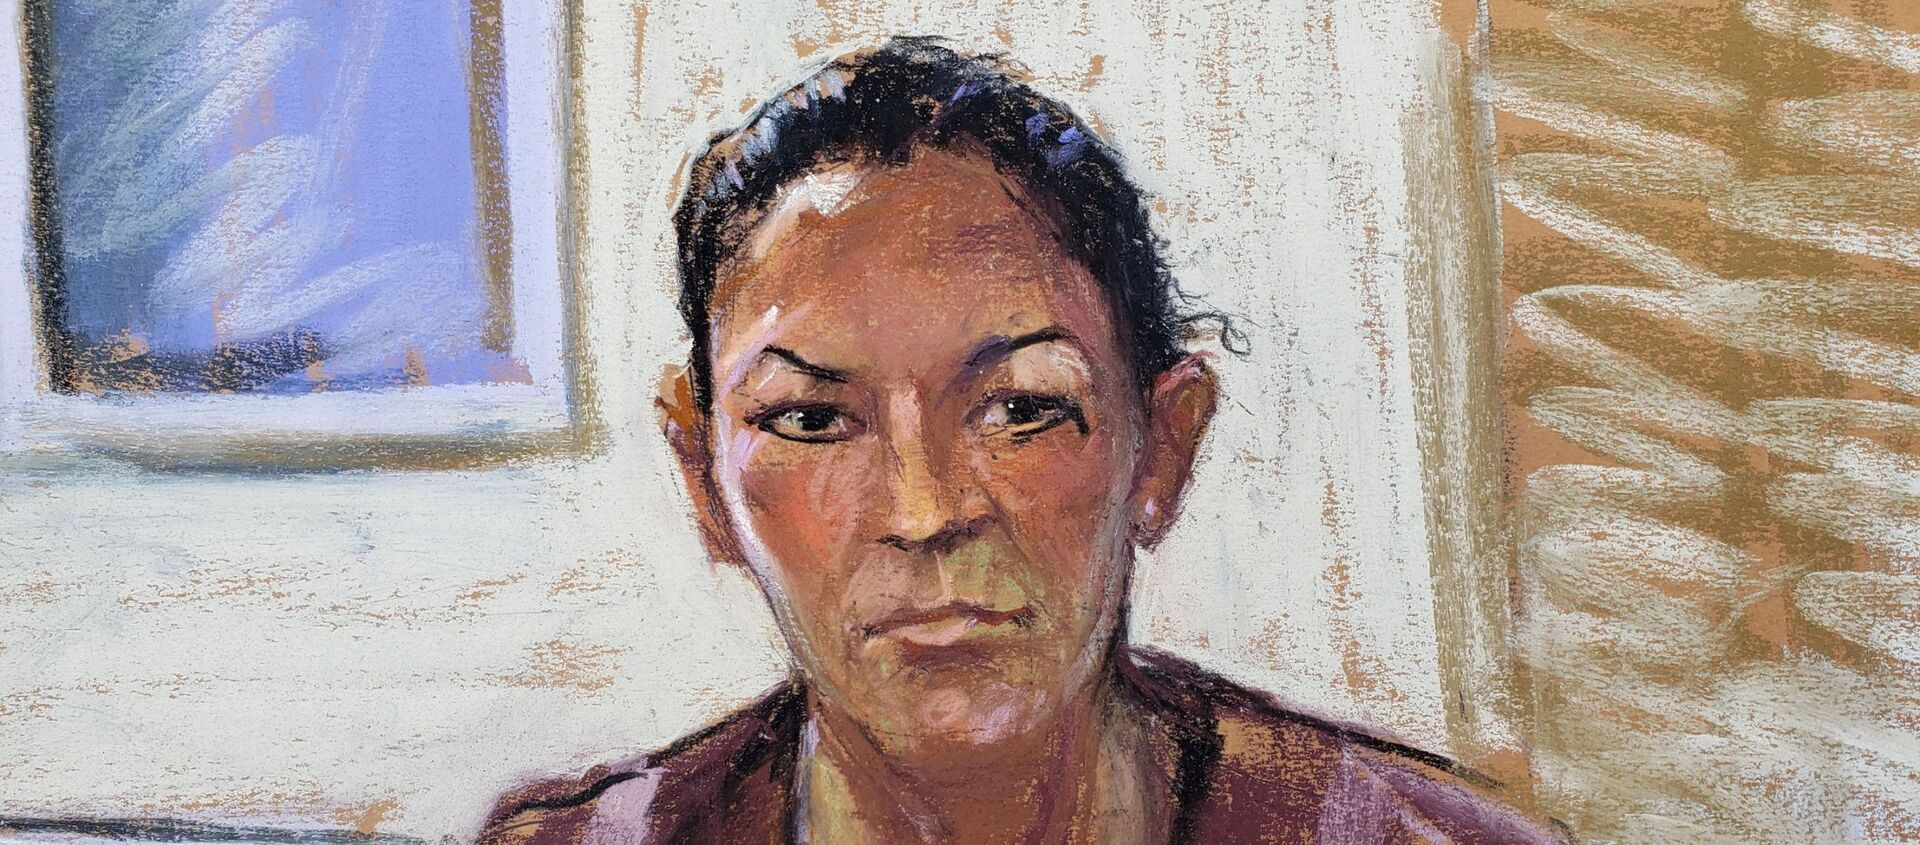 Ghislaine Maxwell appears via video link during her arraignment hearing, where she was denied bail for her role aiding Jeffrey Epstein to recruit and eventually abuse underage girls, in Manhattan Federal Court, in the Manhattan borough of New York City, 14 July 2020 in this courtroom sketch - Sputnik International, 1920, 04.04.2021